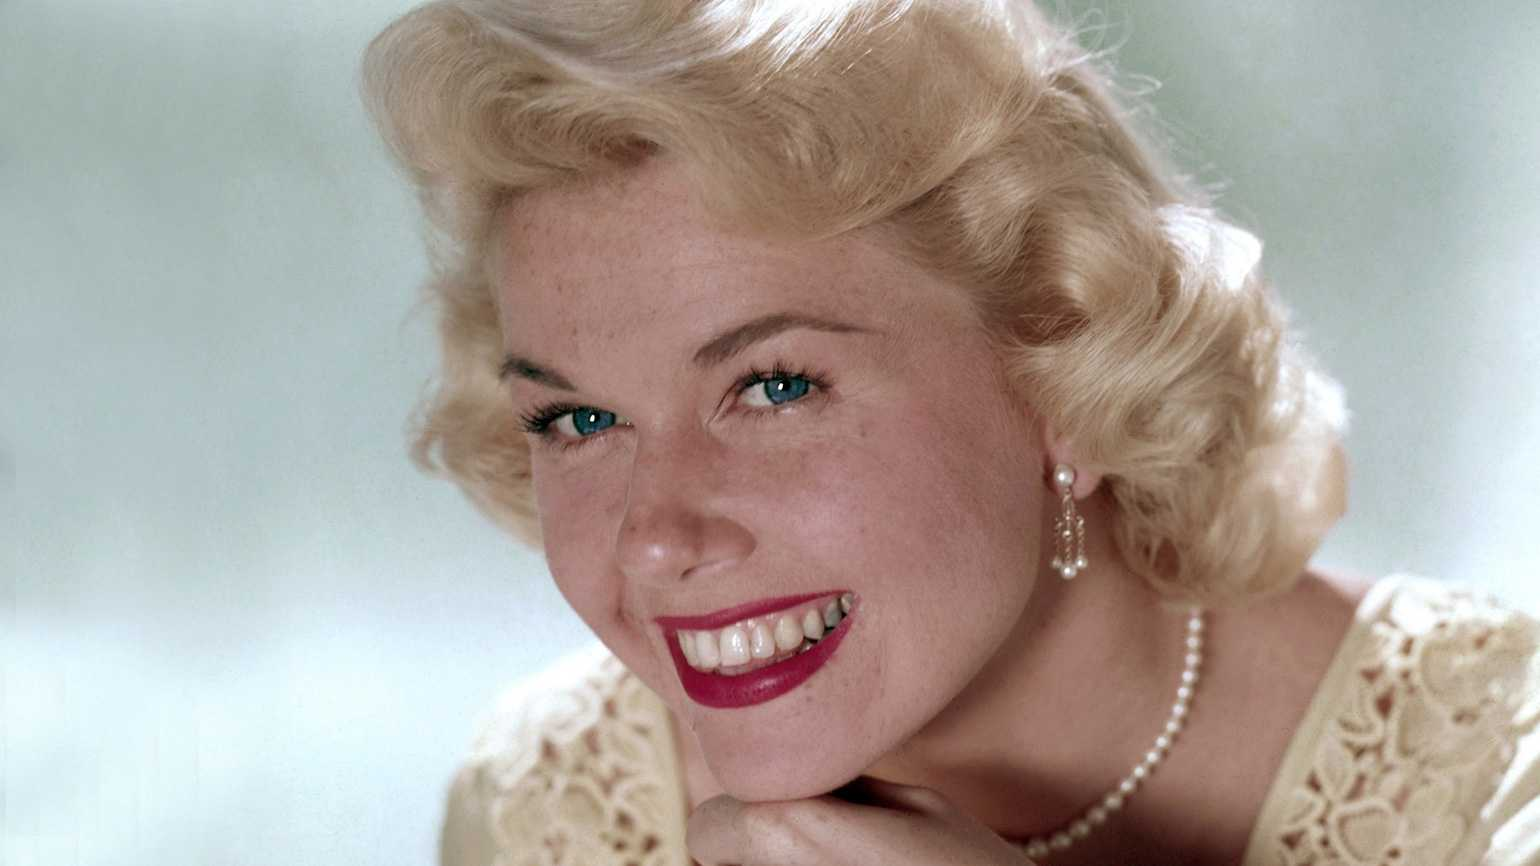 doris day marquee Doris Day Has Died Aged 97